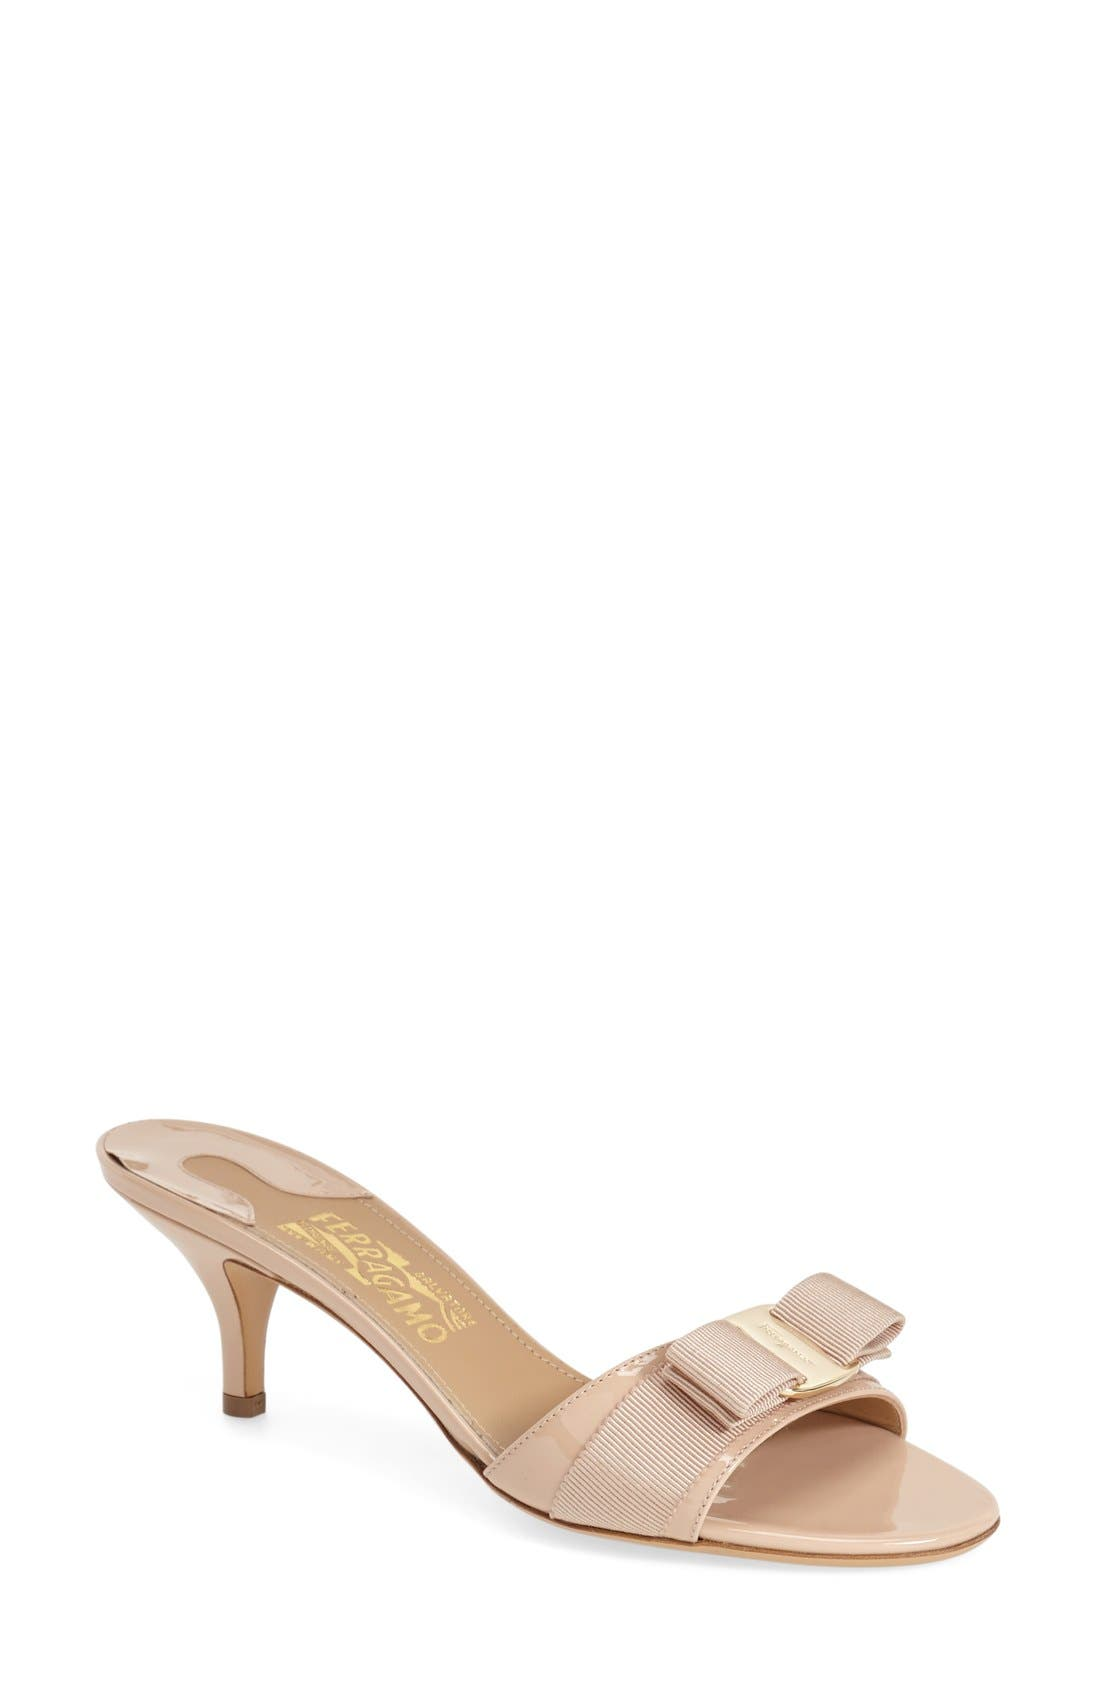 Alternate Image 1 Selected - Salvatore Ferragamo 'Glory' Bow Trim Sandal